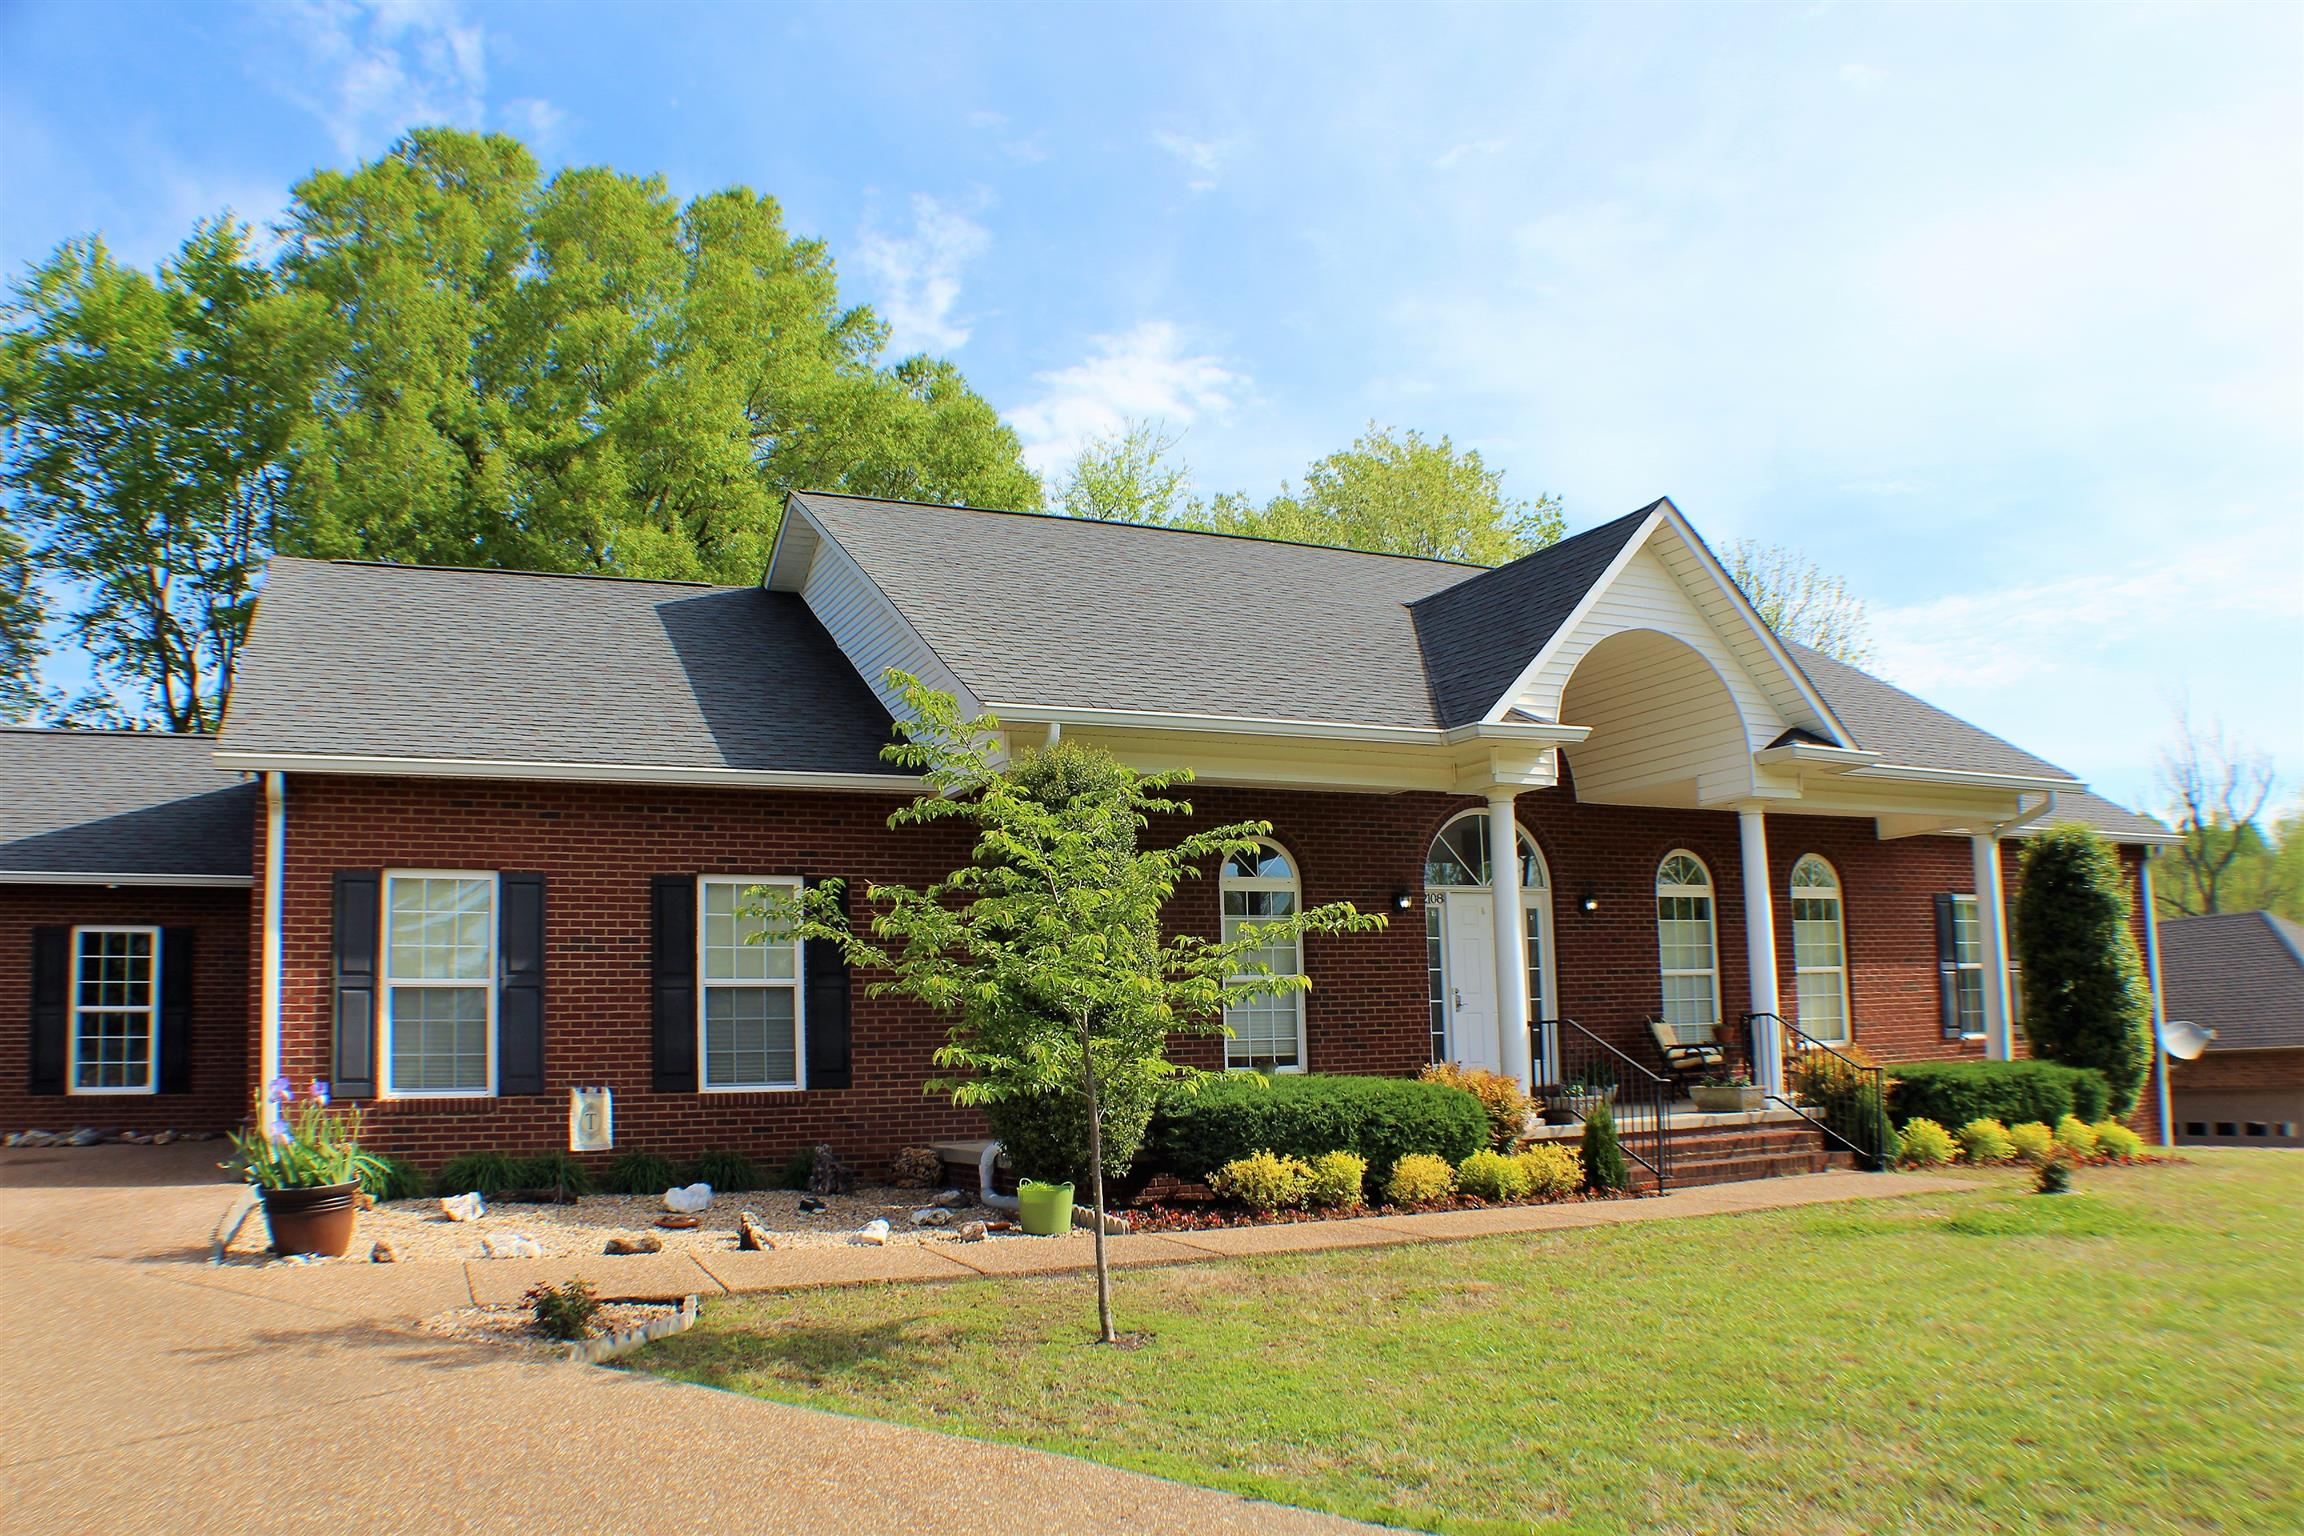 2108 Boxwood Cir, Cookeville, TN 38506 - Cookeville, TN real estate listing